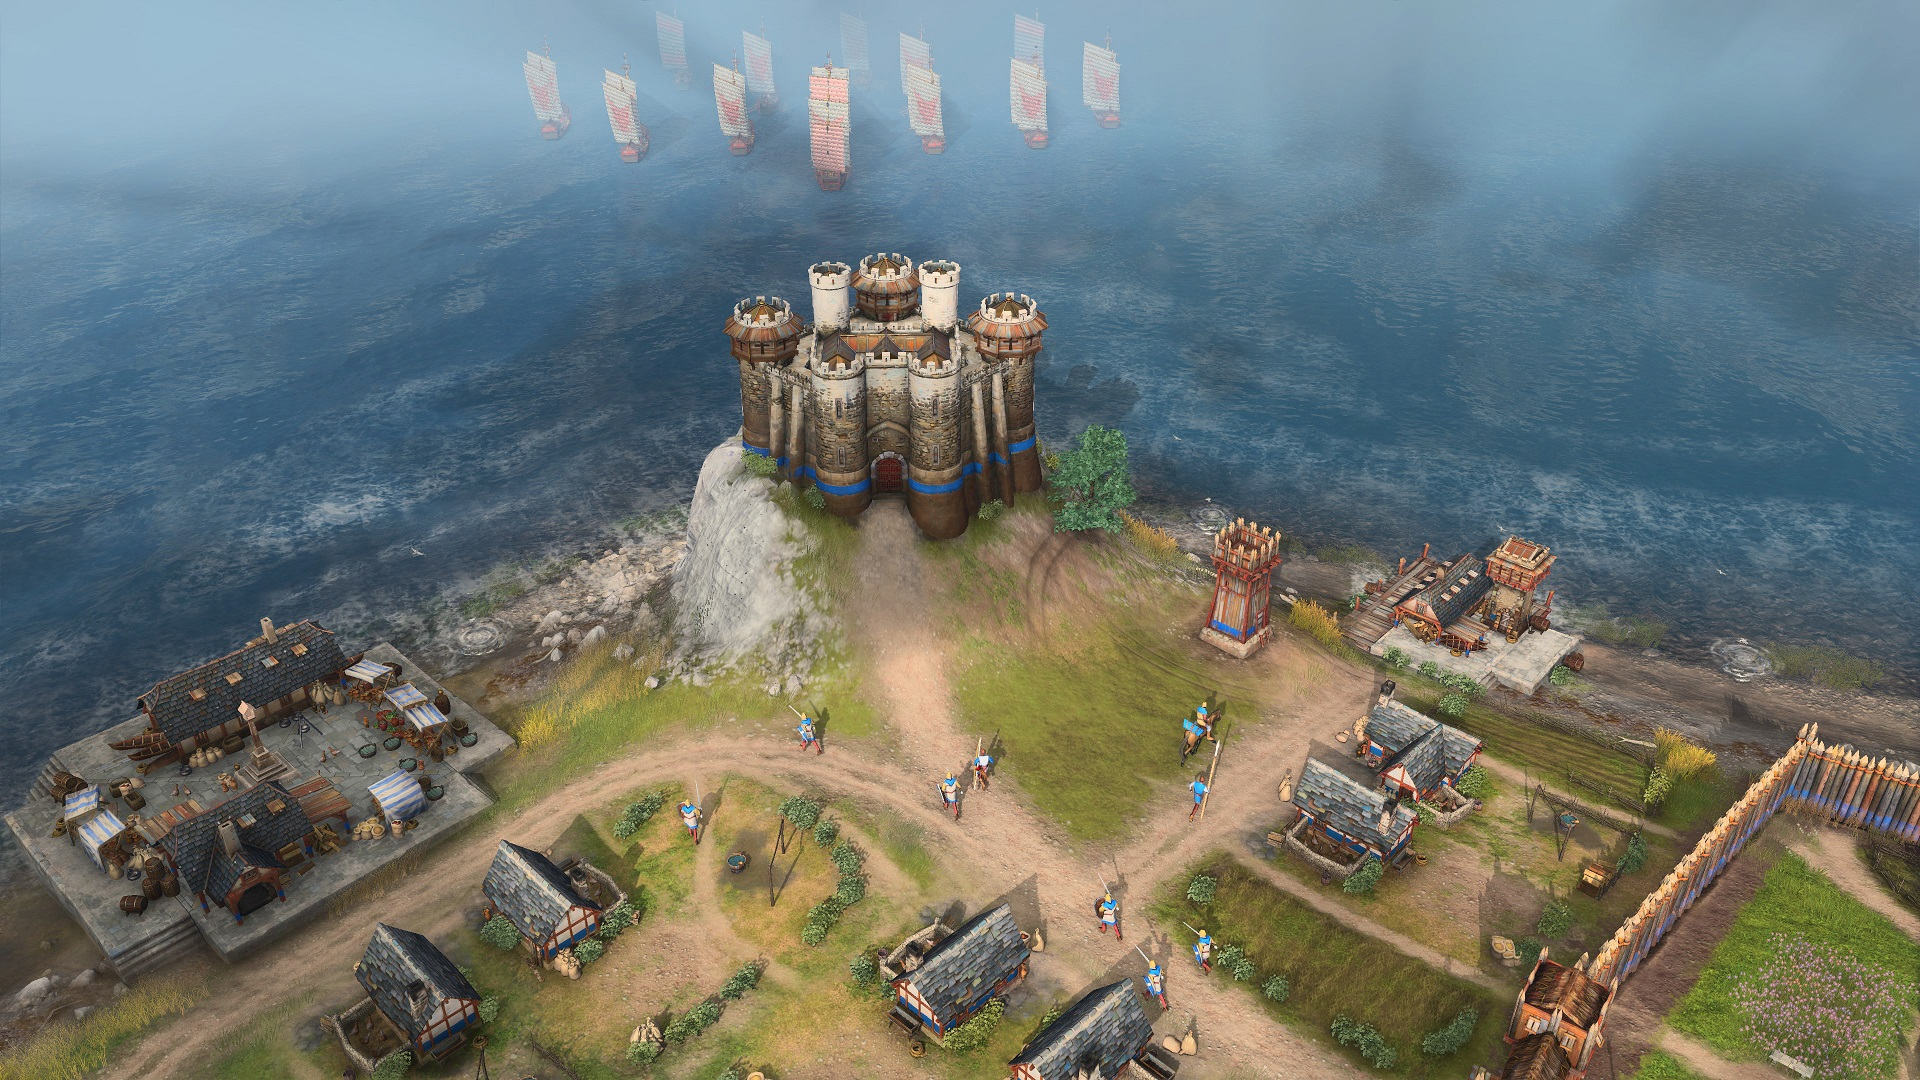 Age of Empires 4: release date, civilisations, and everything else we know